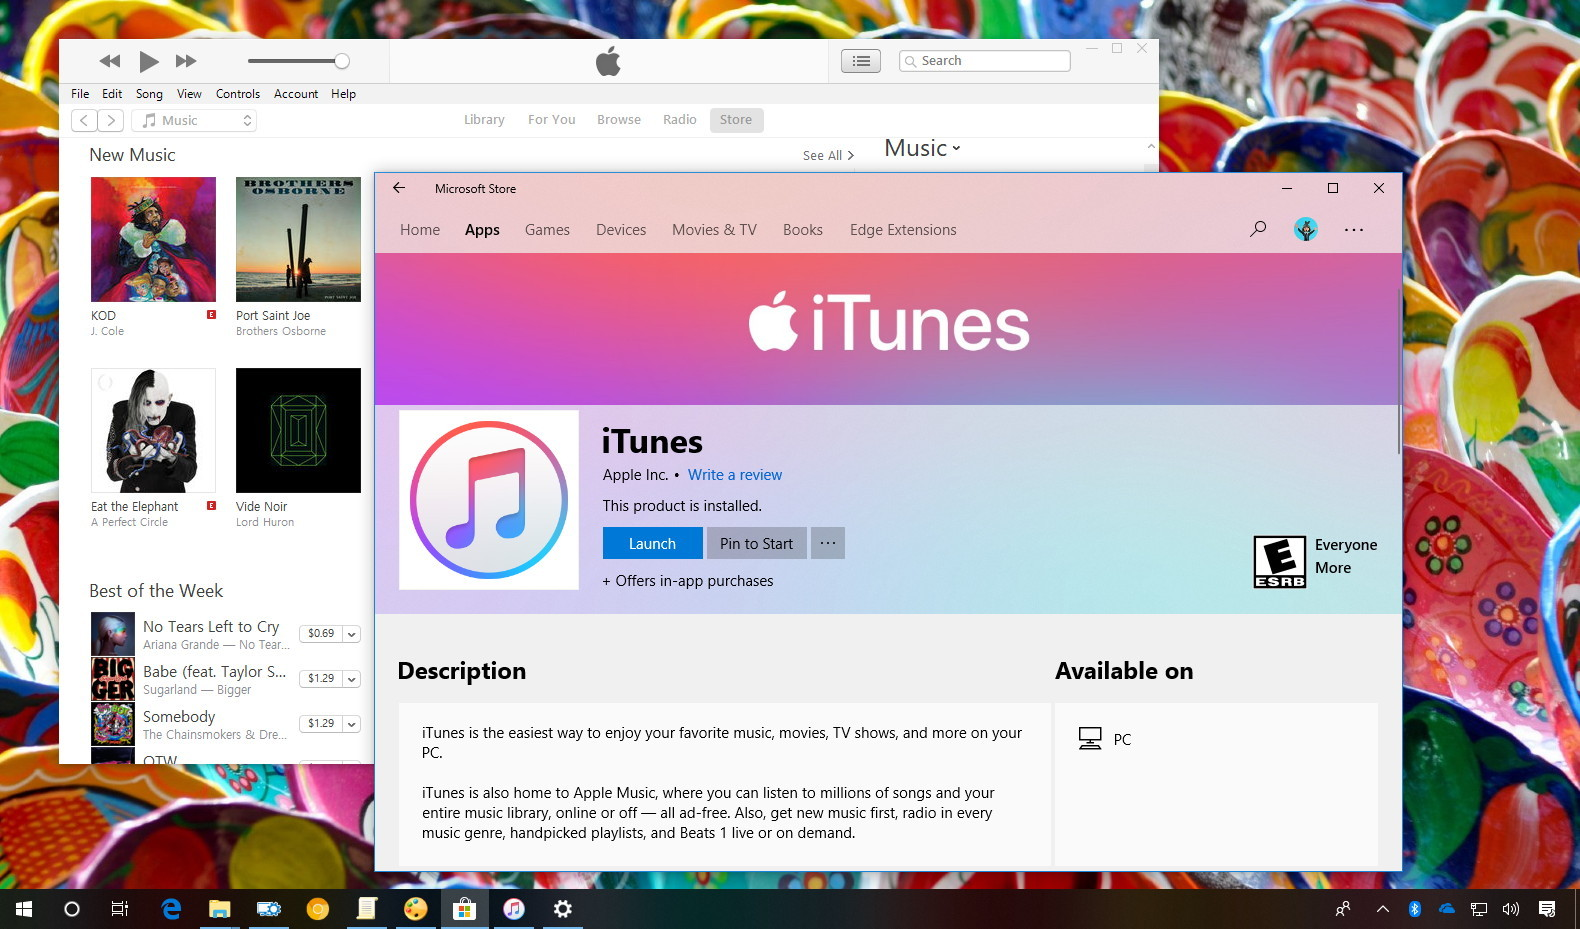 iTunes app for Windows 10 Store download